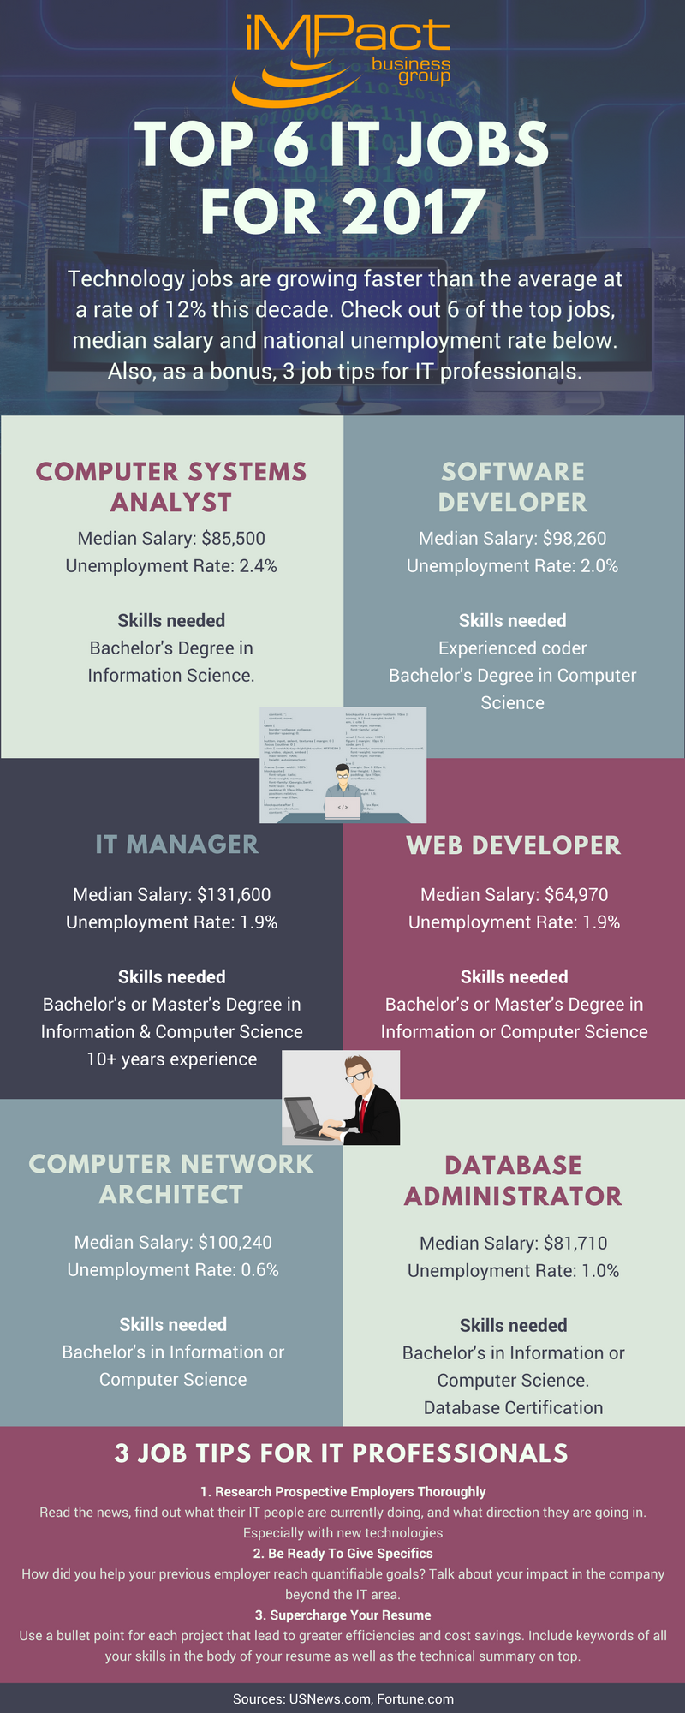 top 6 it jobs for 2017 info graphic - Job Searching Tips